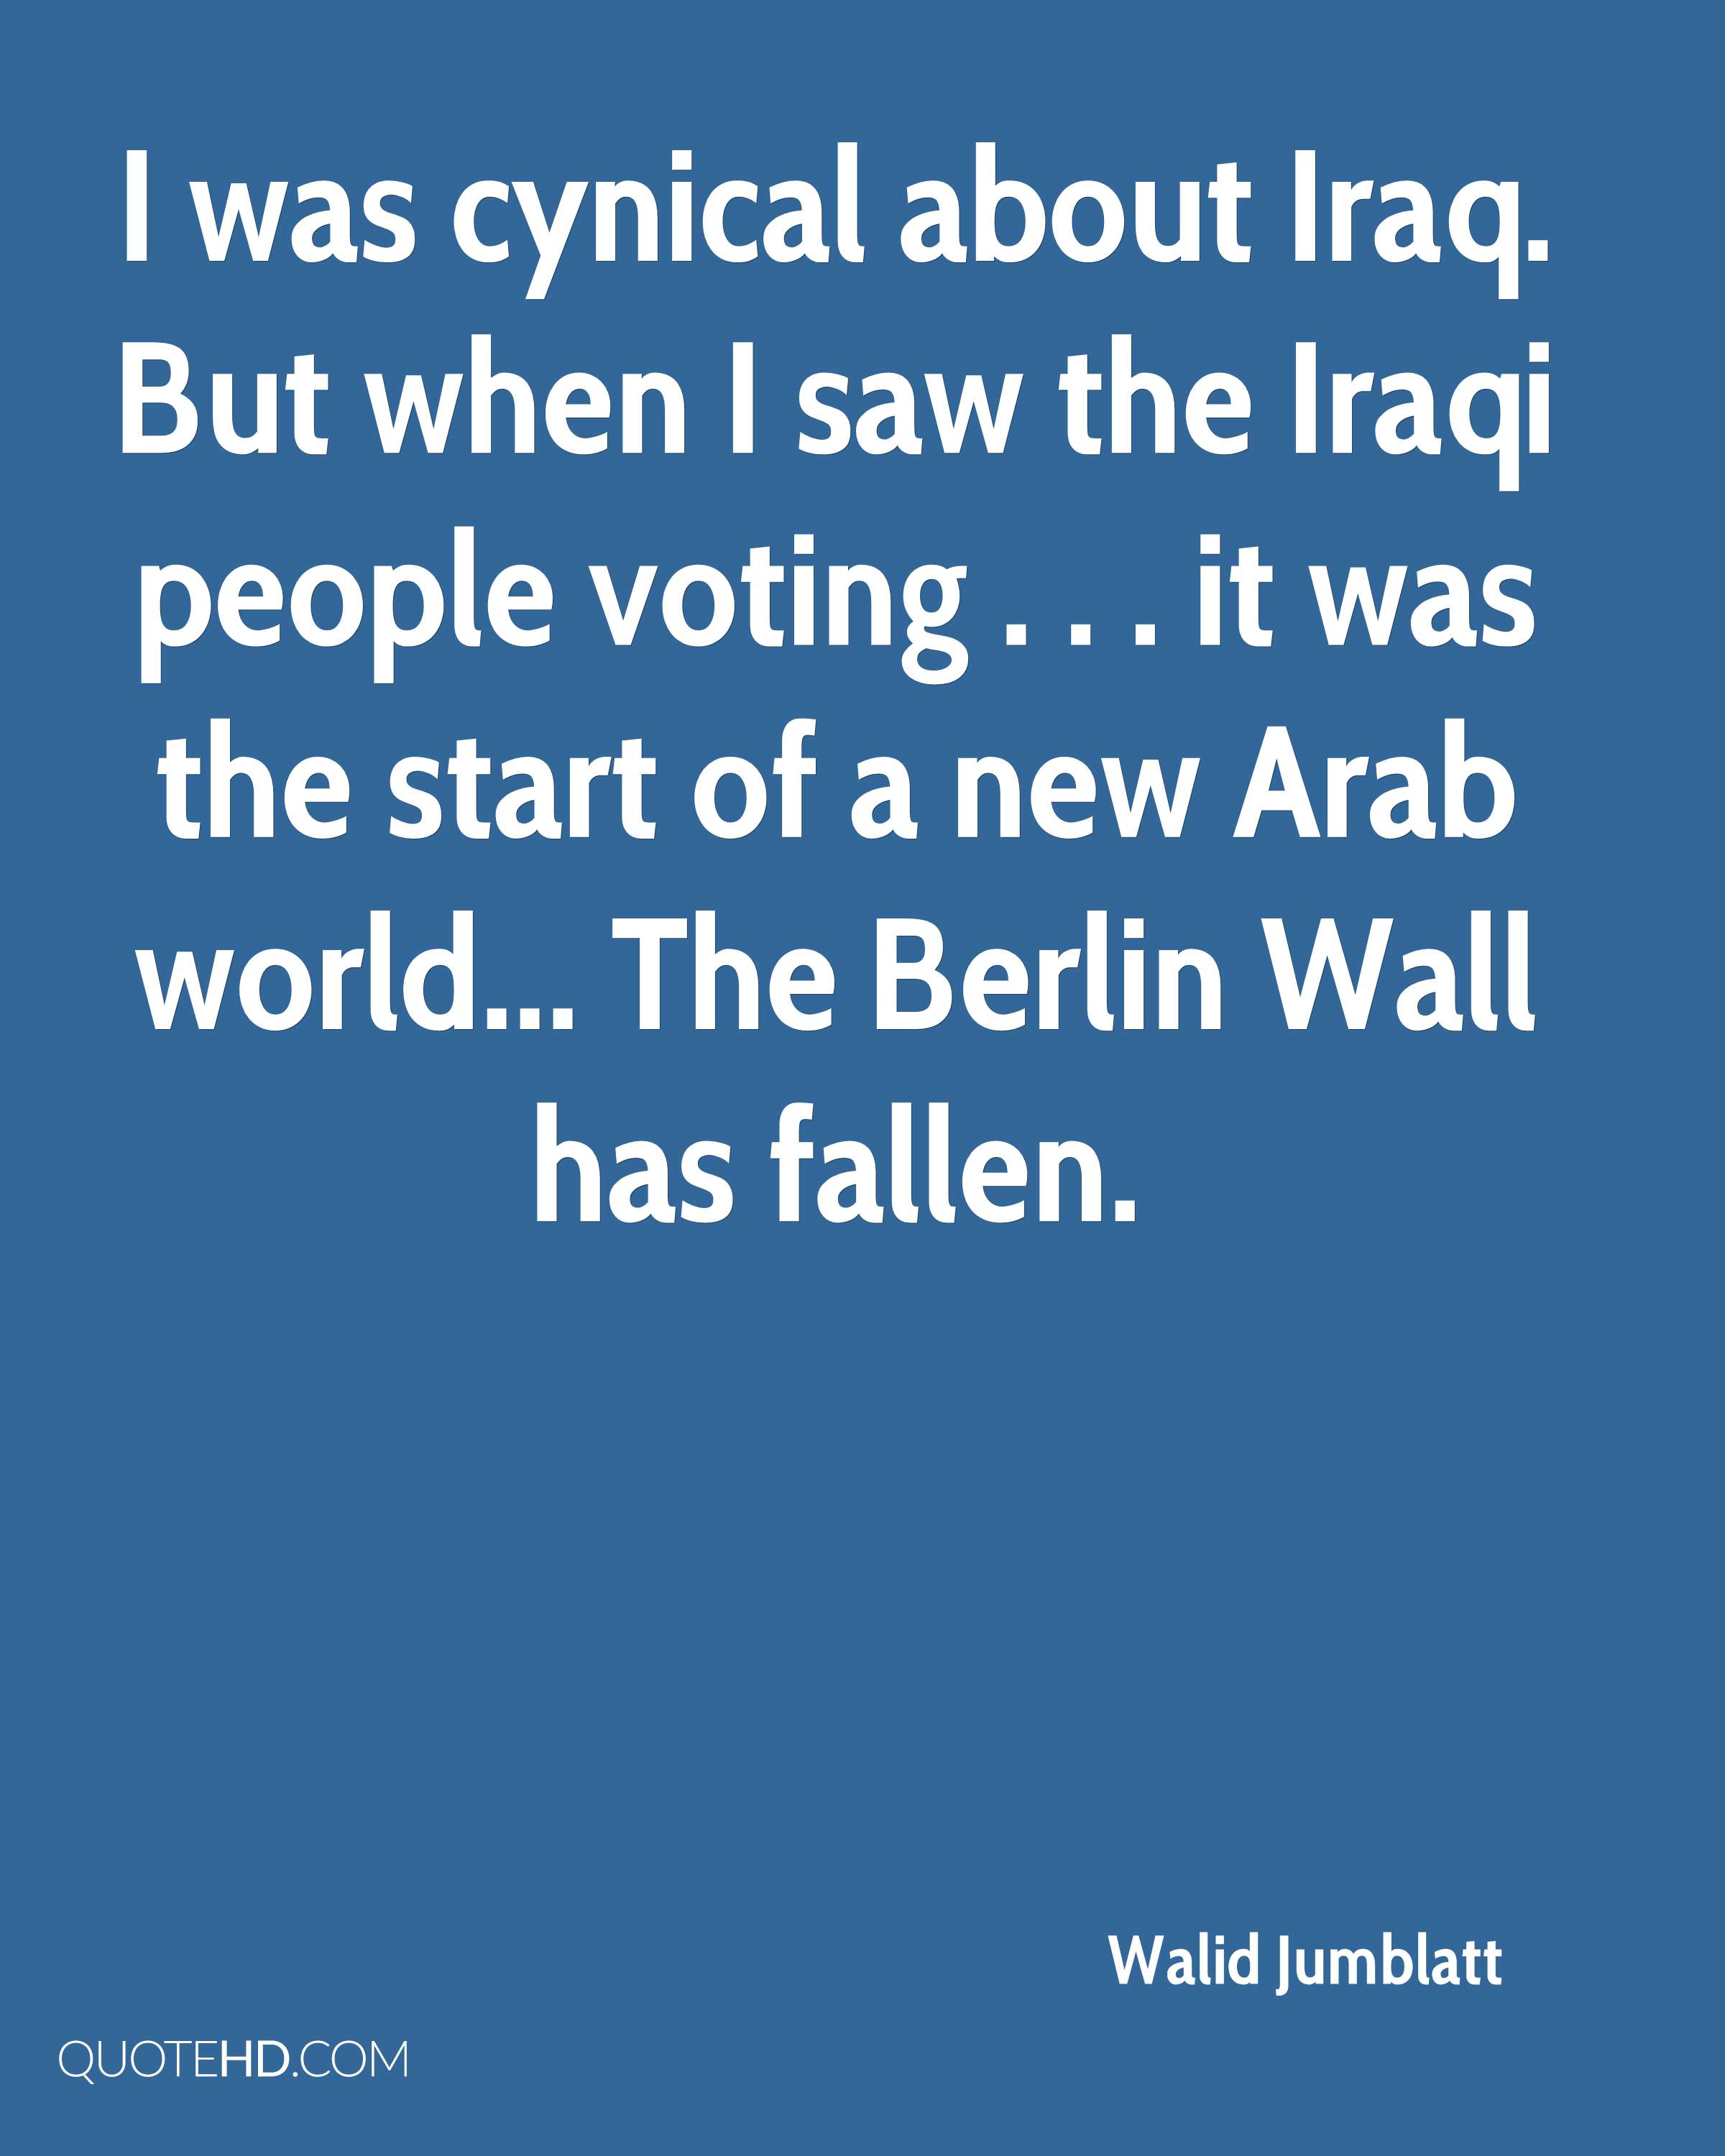 I was cynical about Iraq. But when I saw the Iraqi people voting . . . it was the start of a new Arab world... The Berlin Wall has fallen.